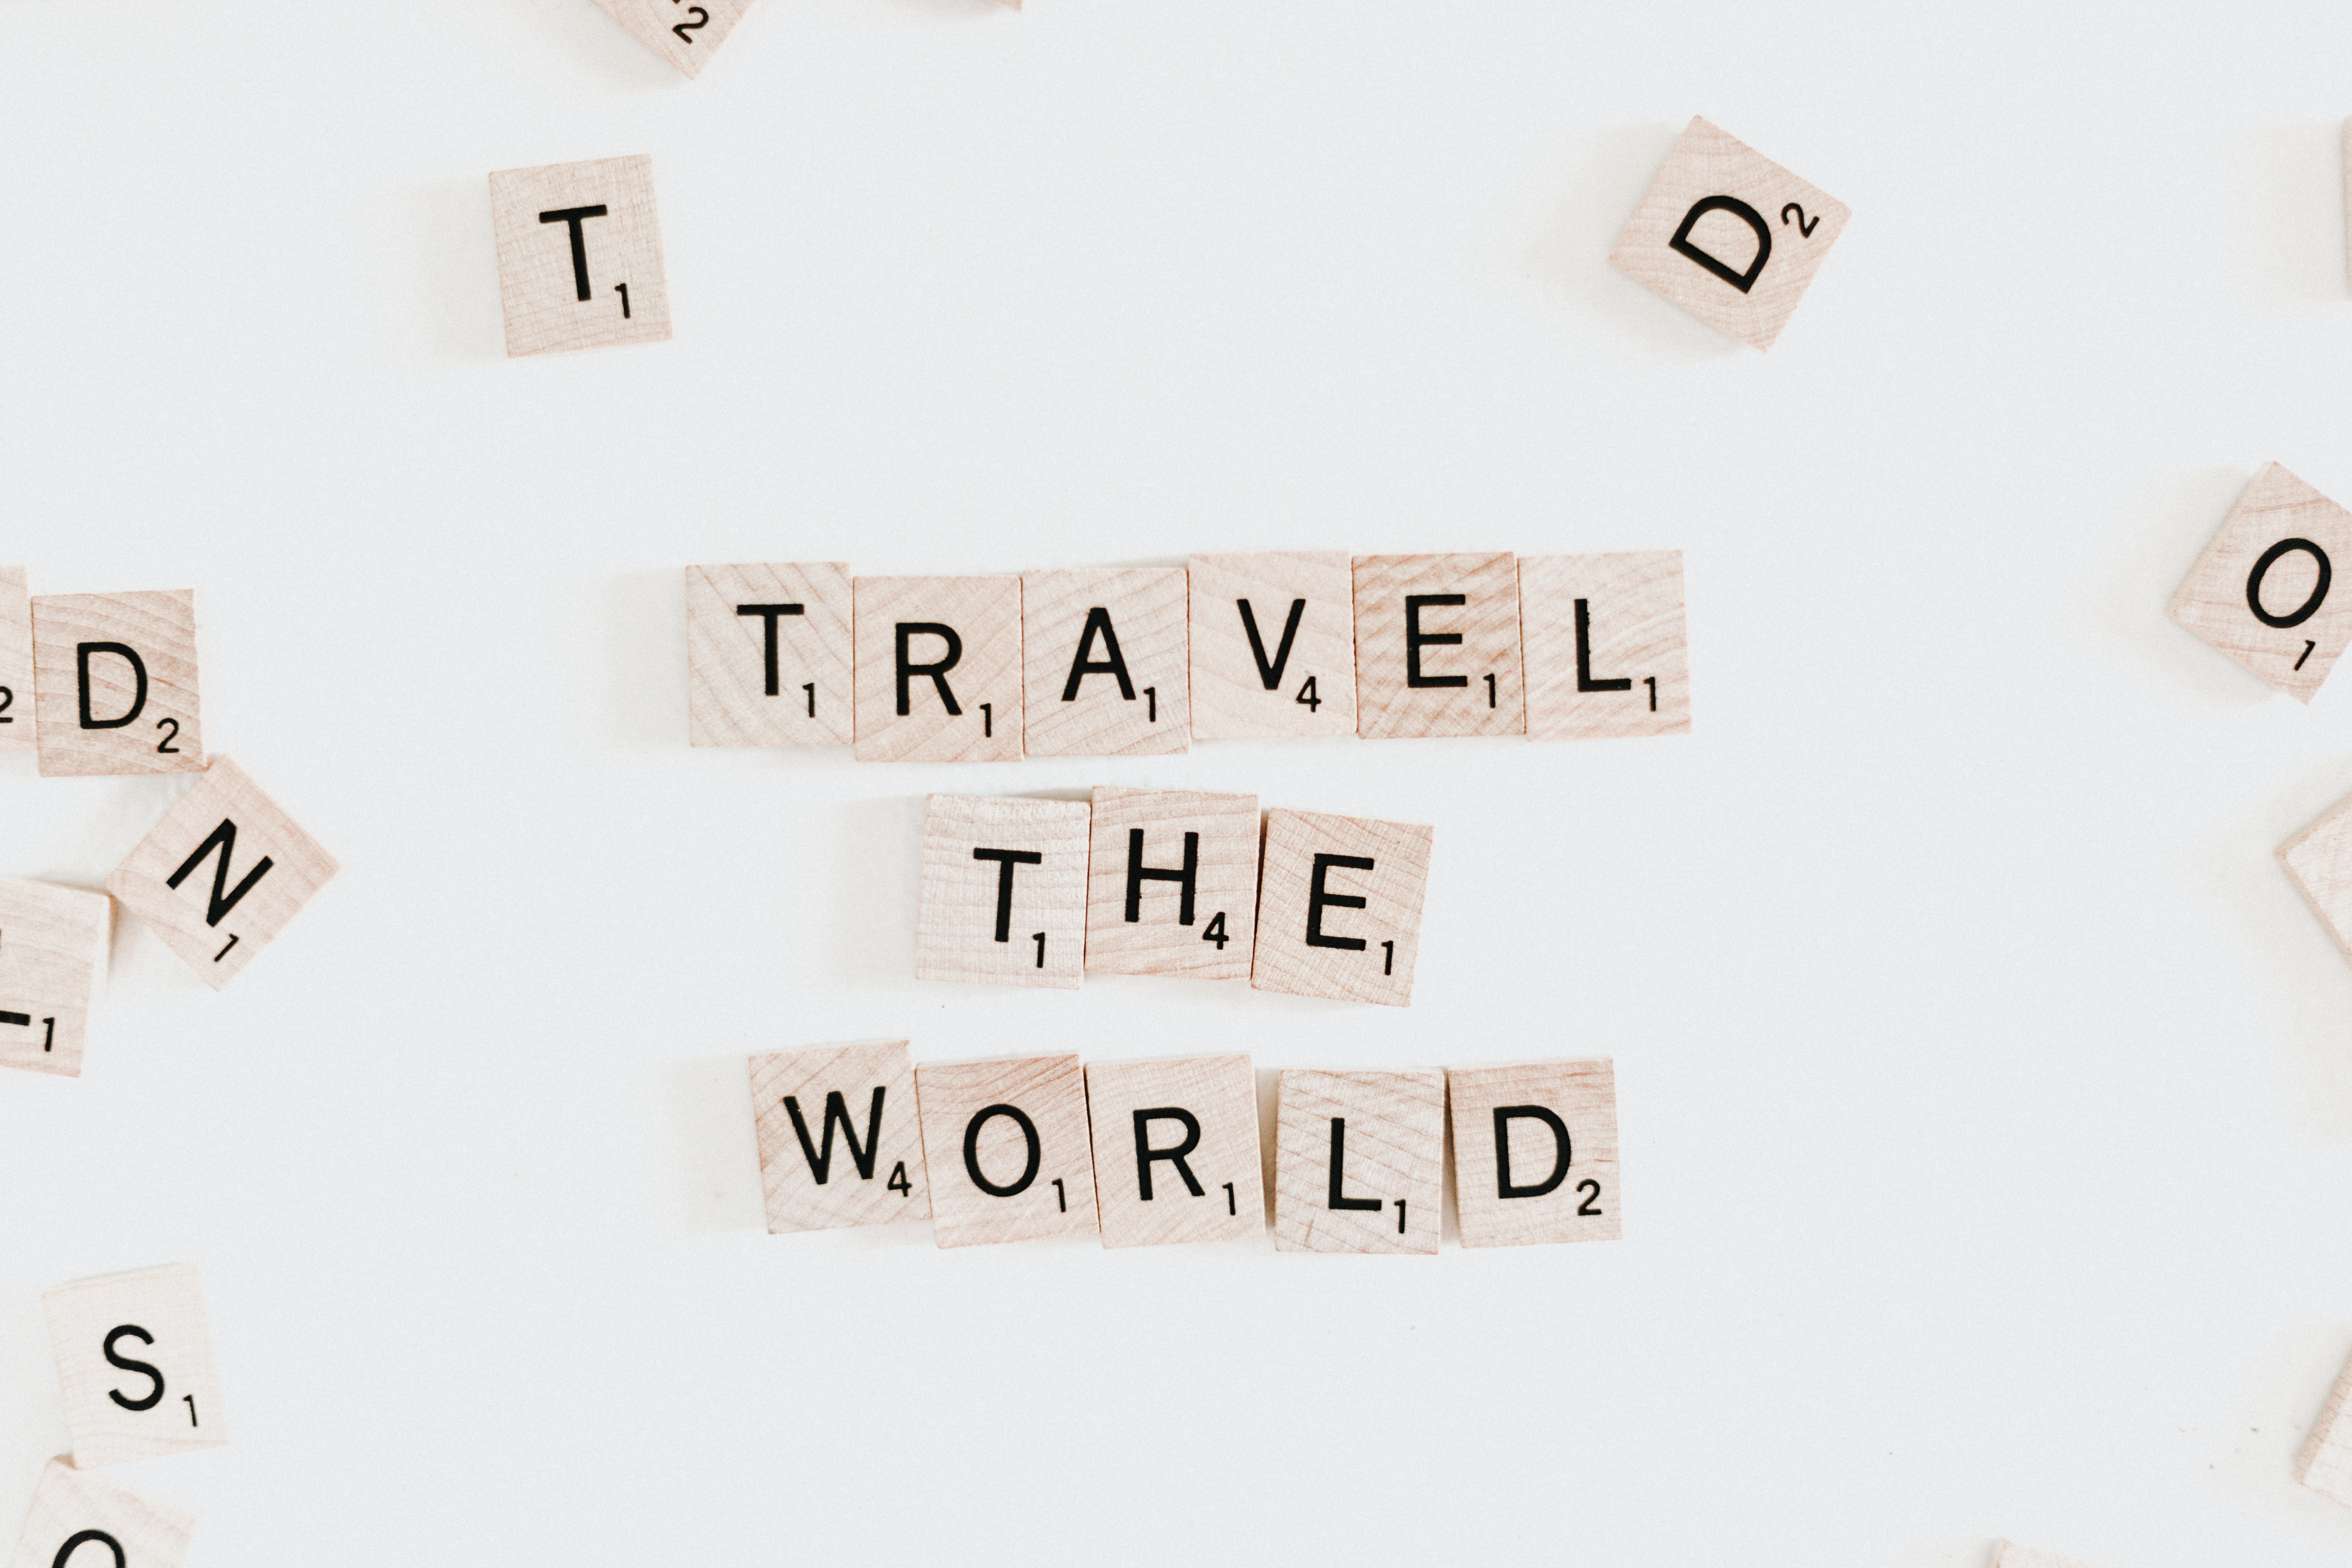 Travel board games